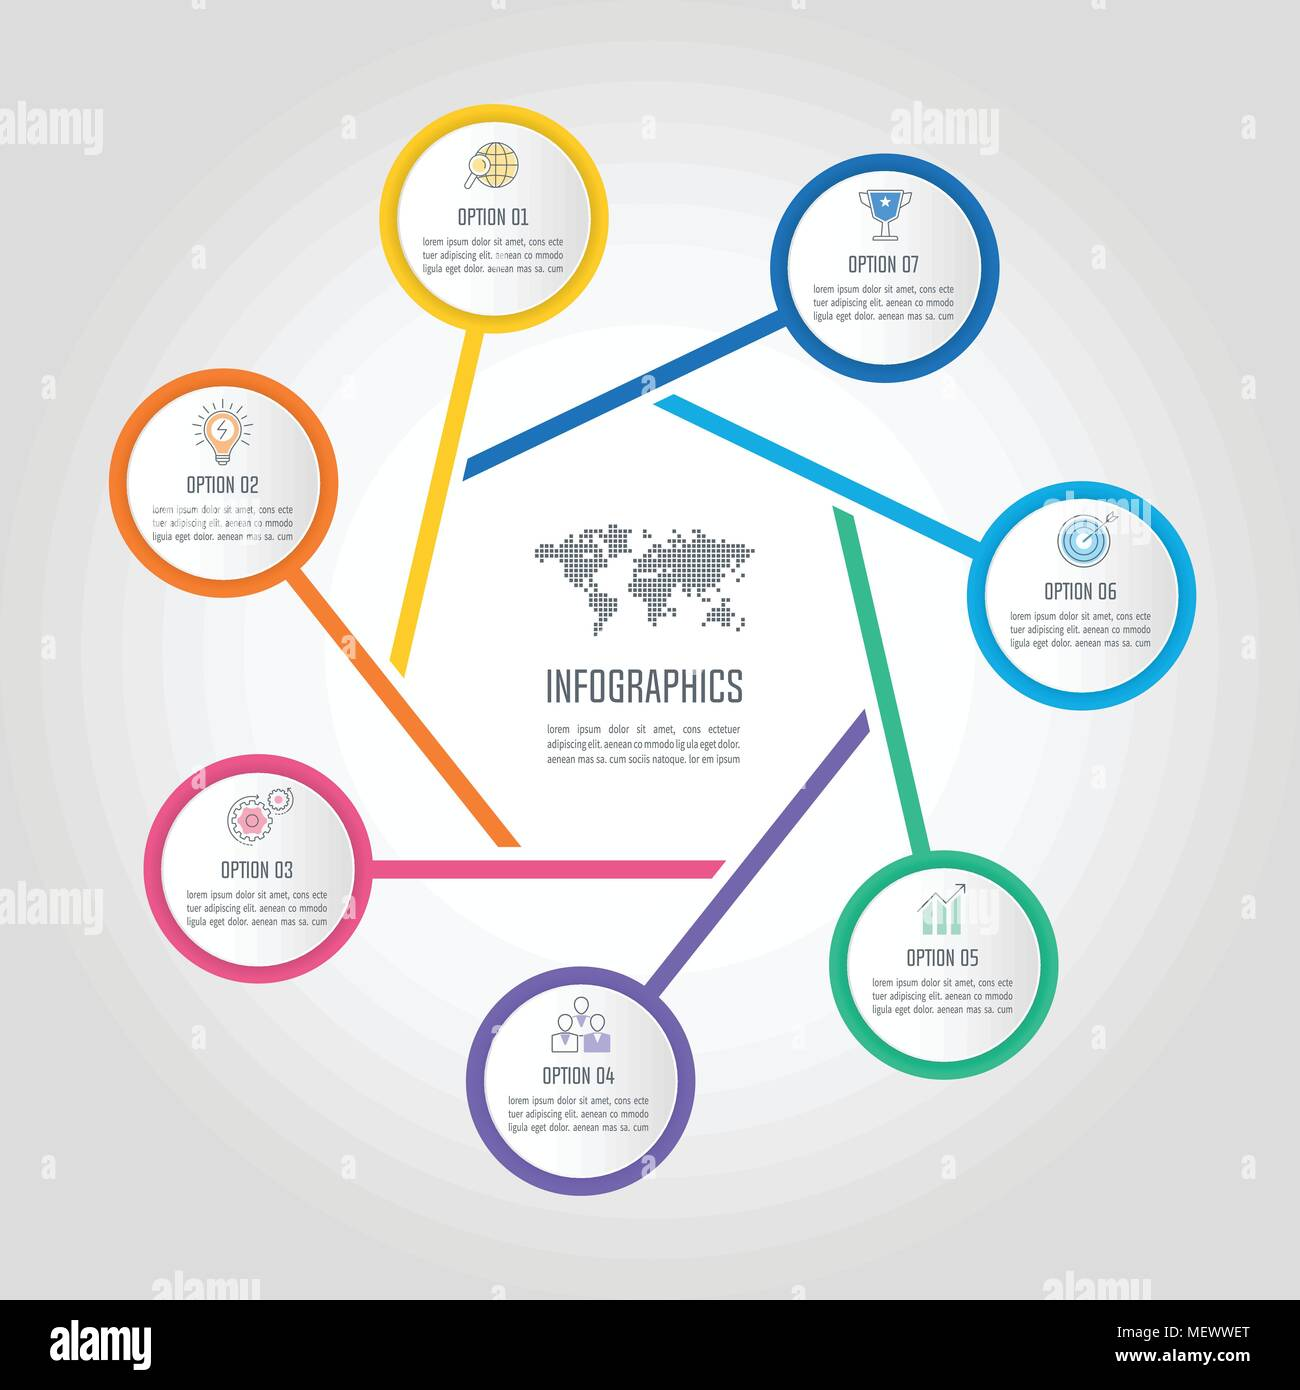 creative concept for infographic with 7 options, parts or processes